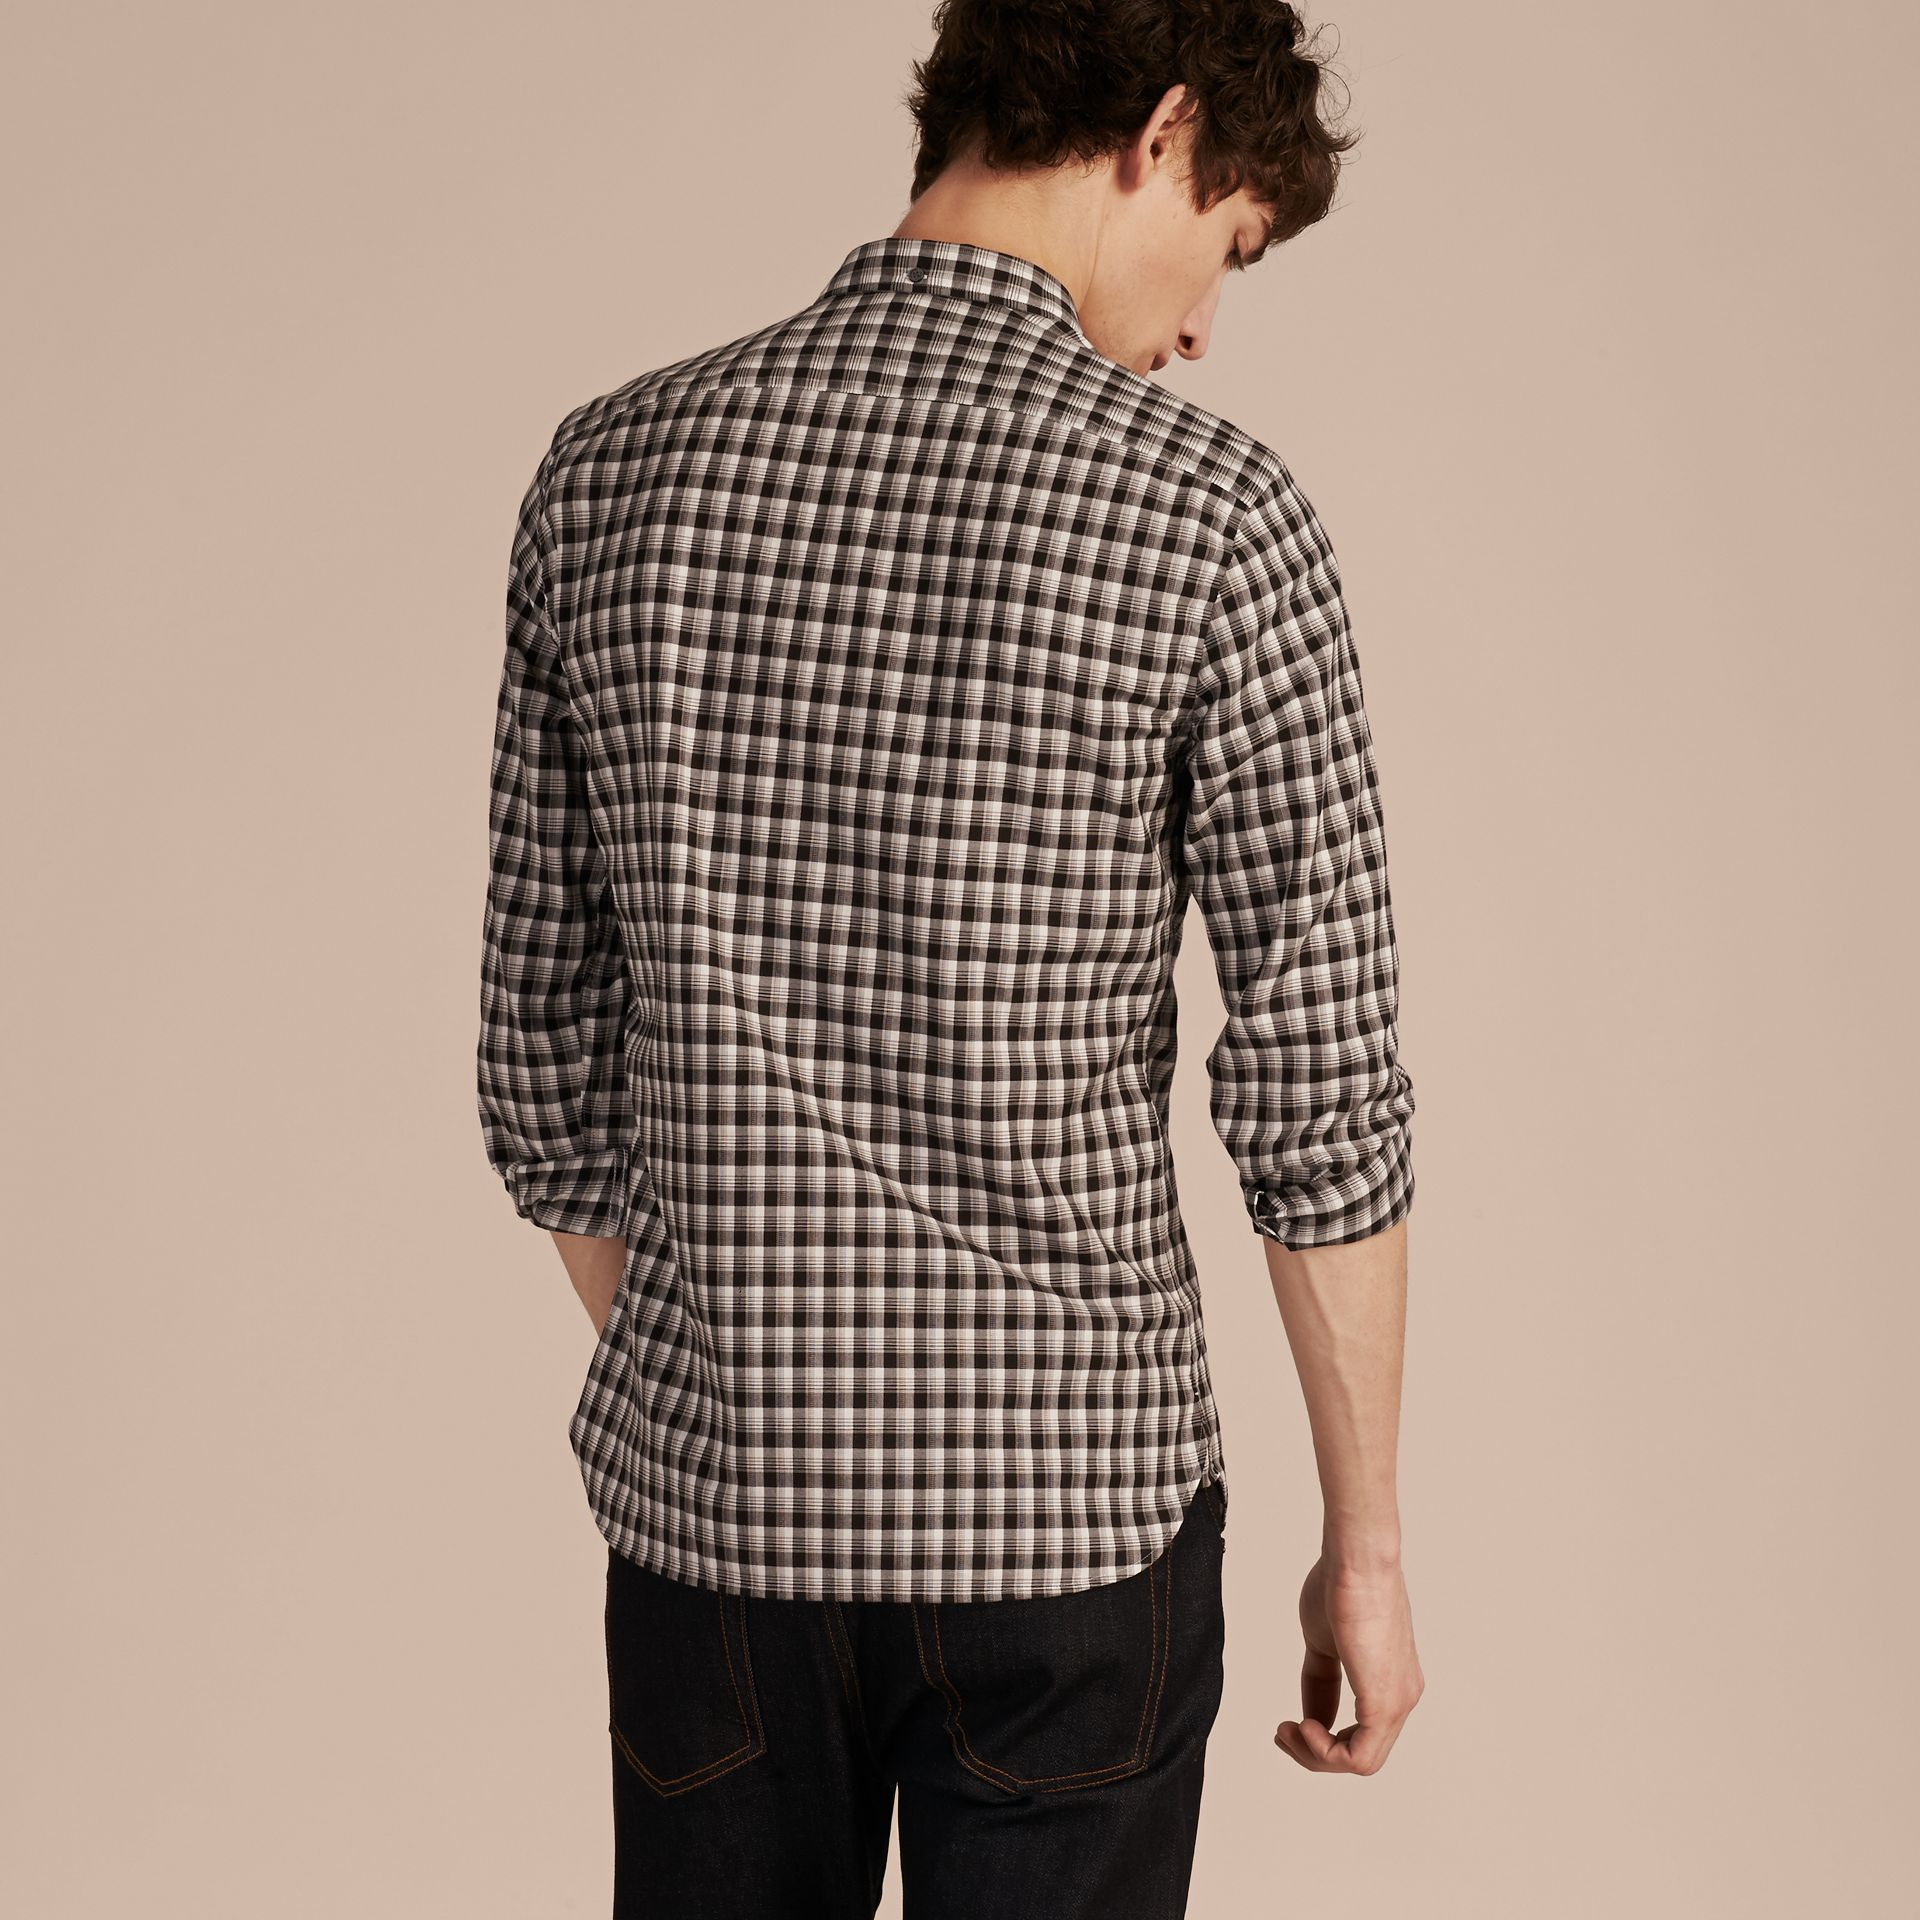 Black Gingham Check Cotton Twill Shirt Black - gallery image 3